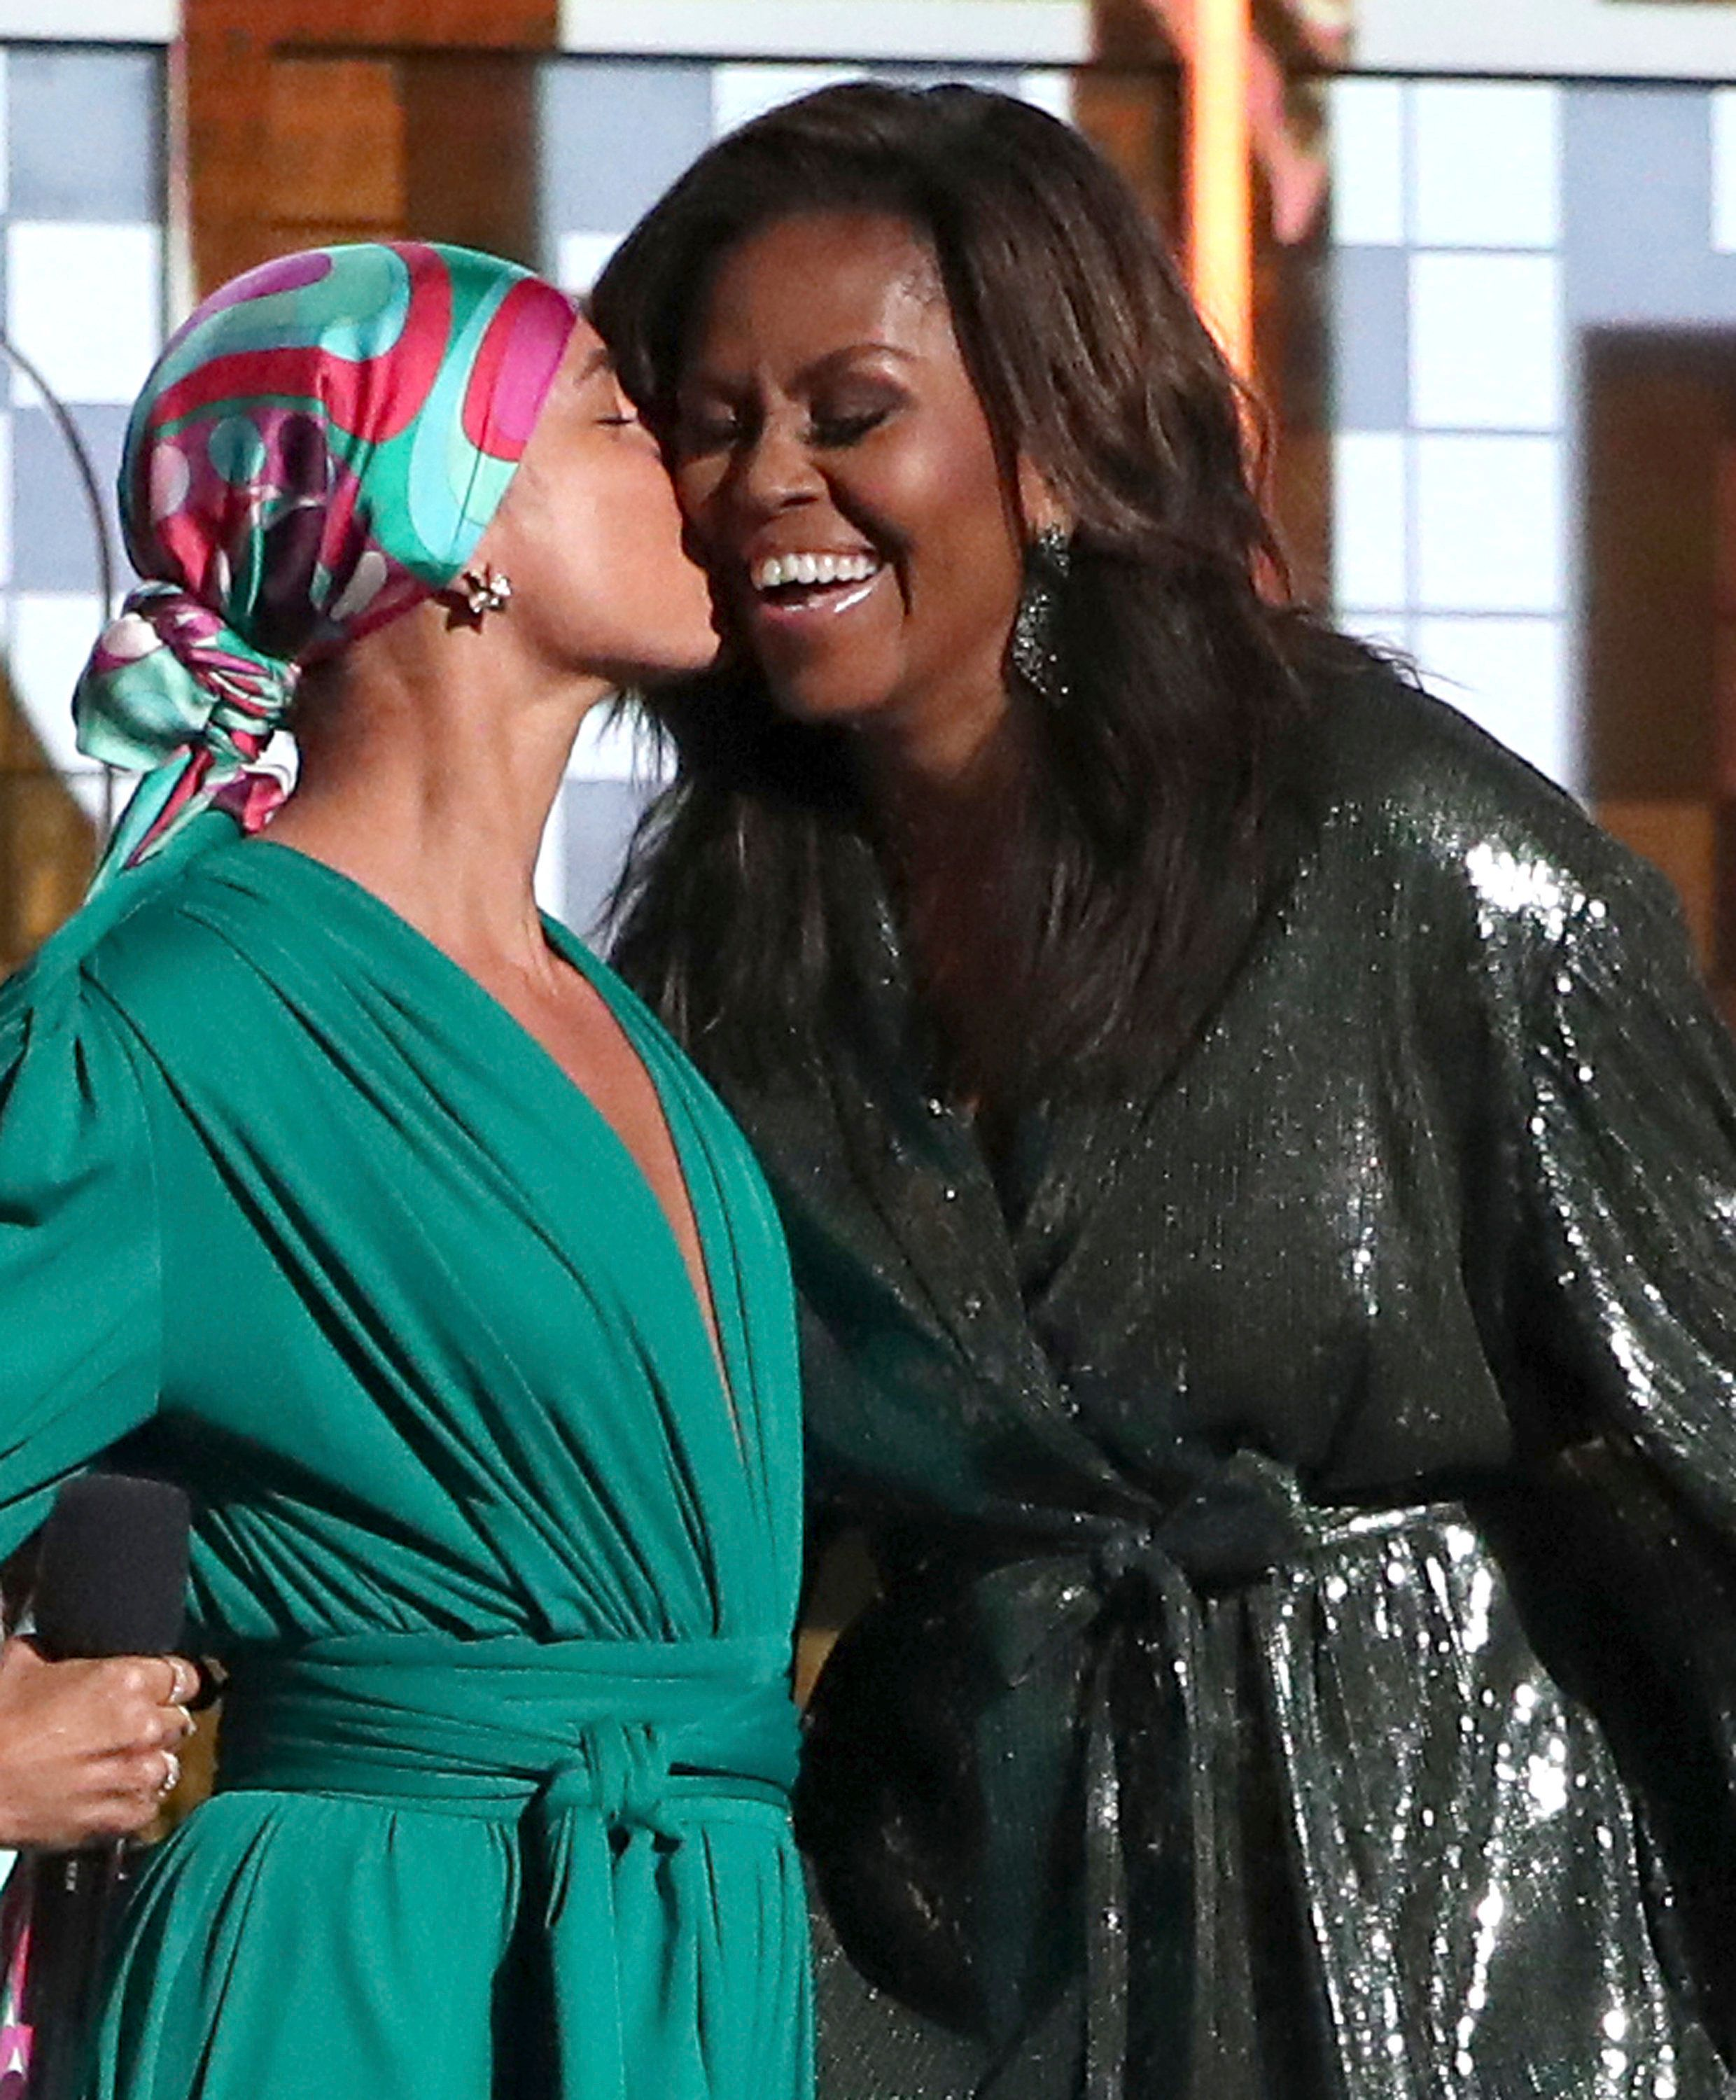 Michelle Obama's Surprise Grammy